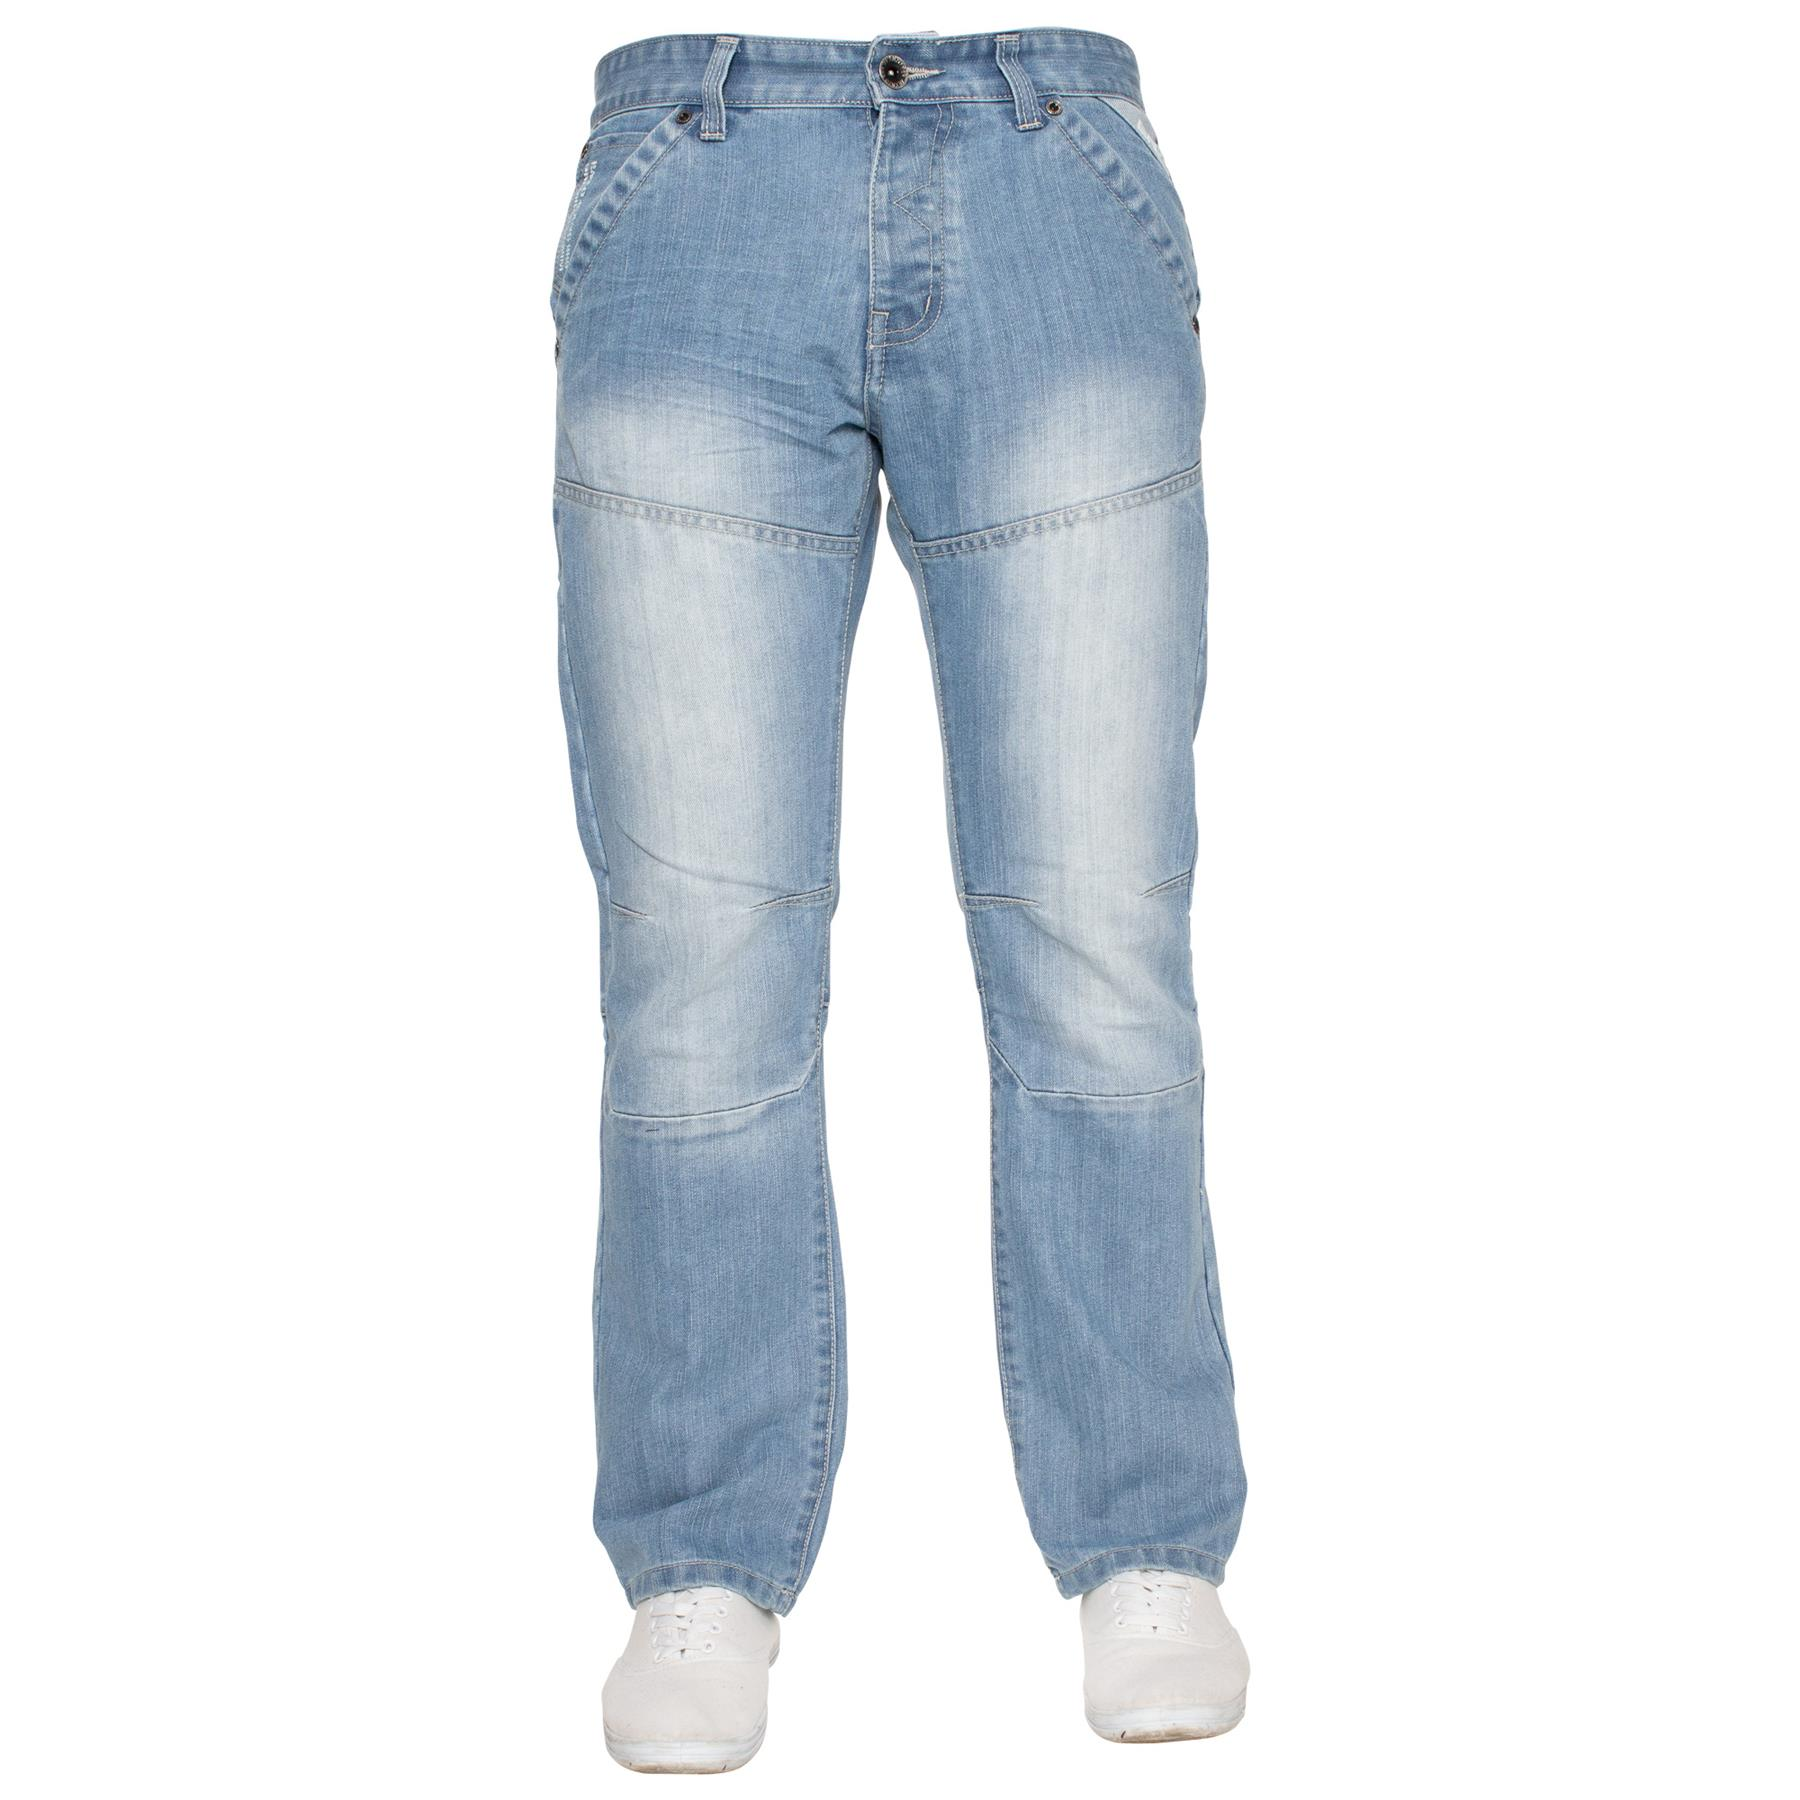 Enzo-Mens-Jeans-Big-Tall-Leg-King-Size-Denim-Pants-Chino-Trousers-Waist-44-034-60-034 miniature 53